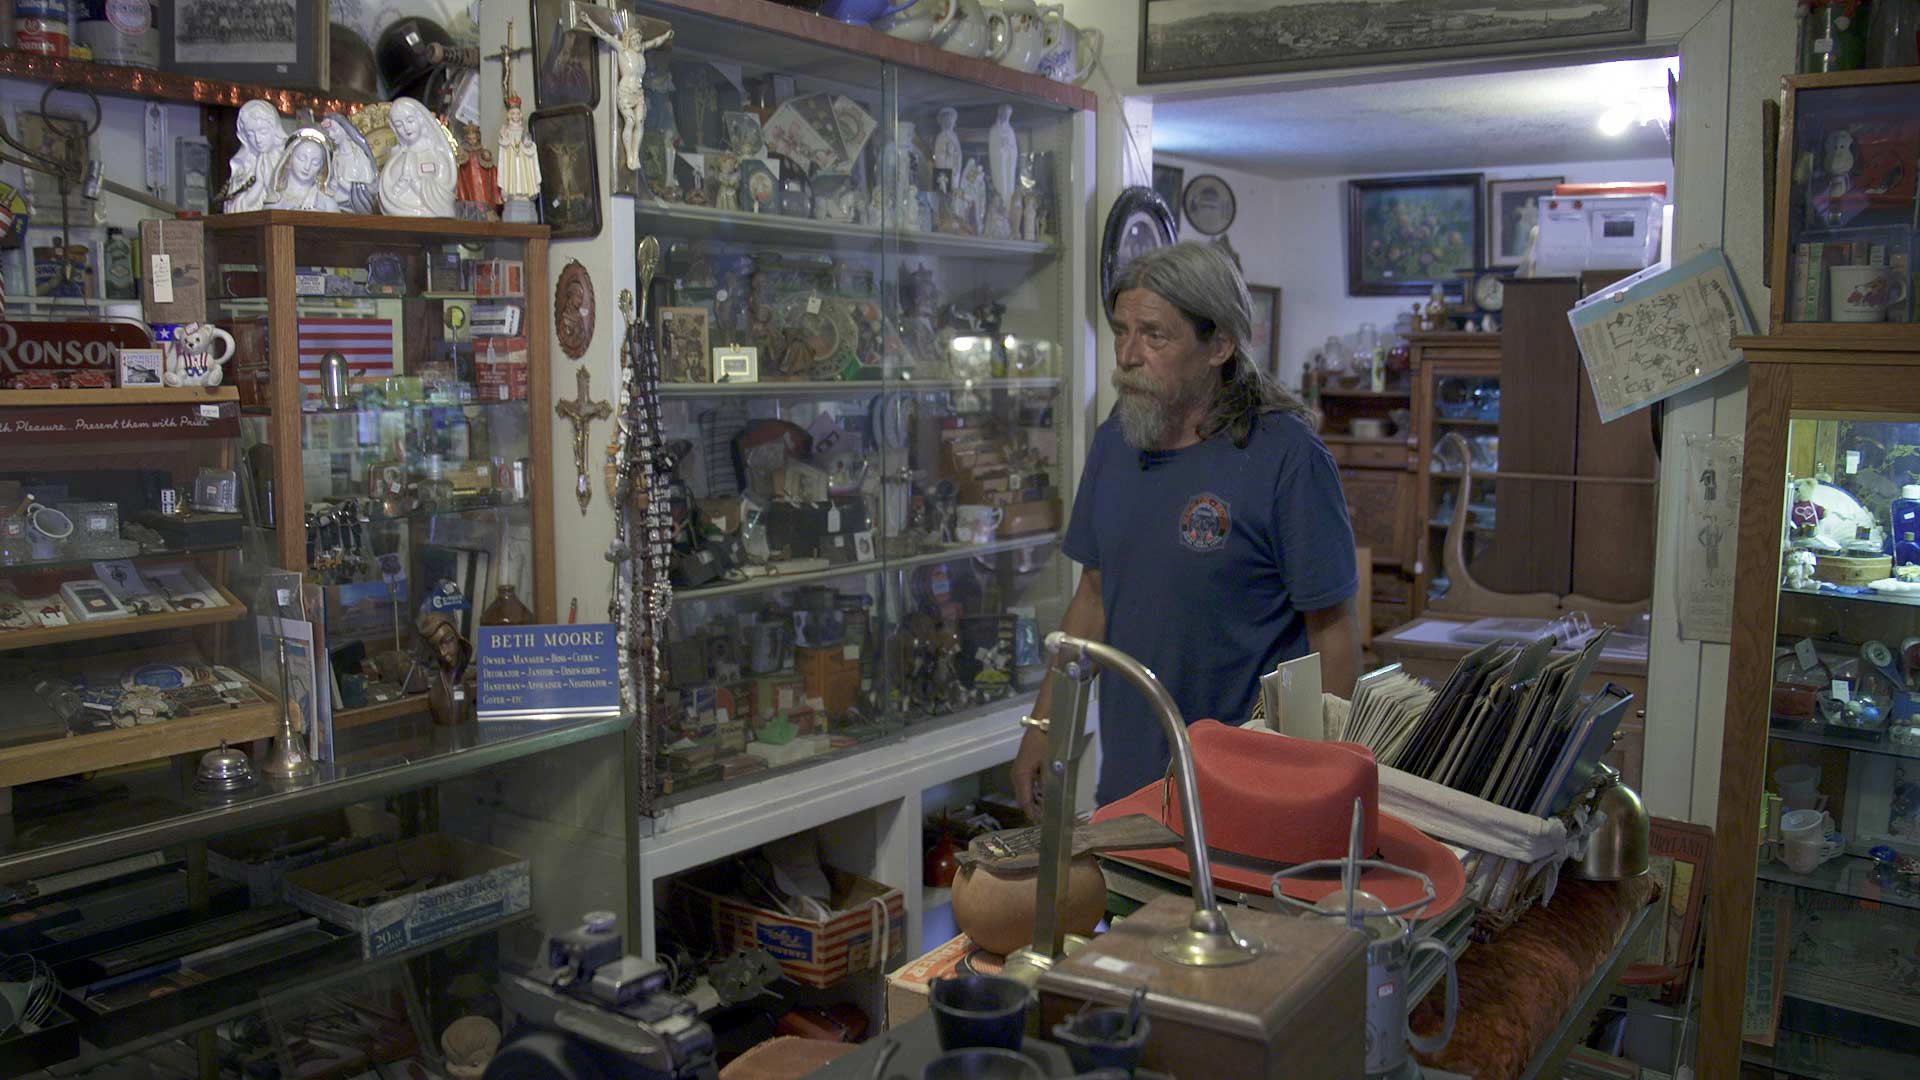 Rick Williams moves about his antique shop in Top-of-the-World on June 15,2021. He and his wife briefly evacuated the community when the Telegraph Fire began to encroach on the area.